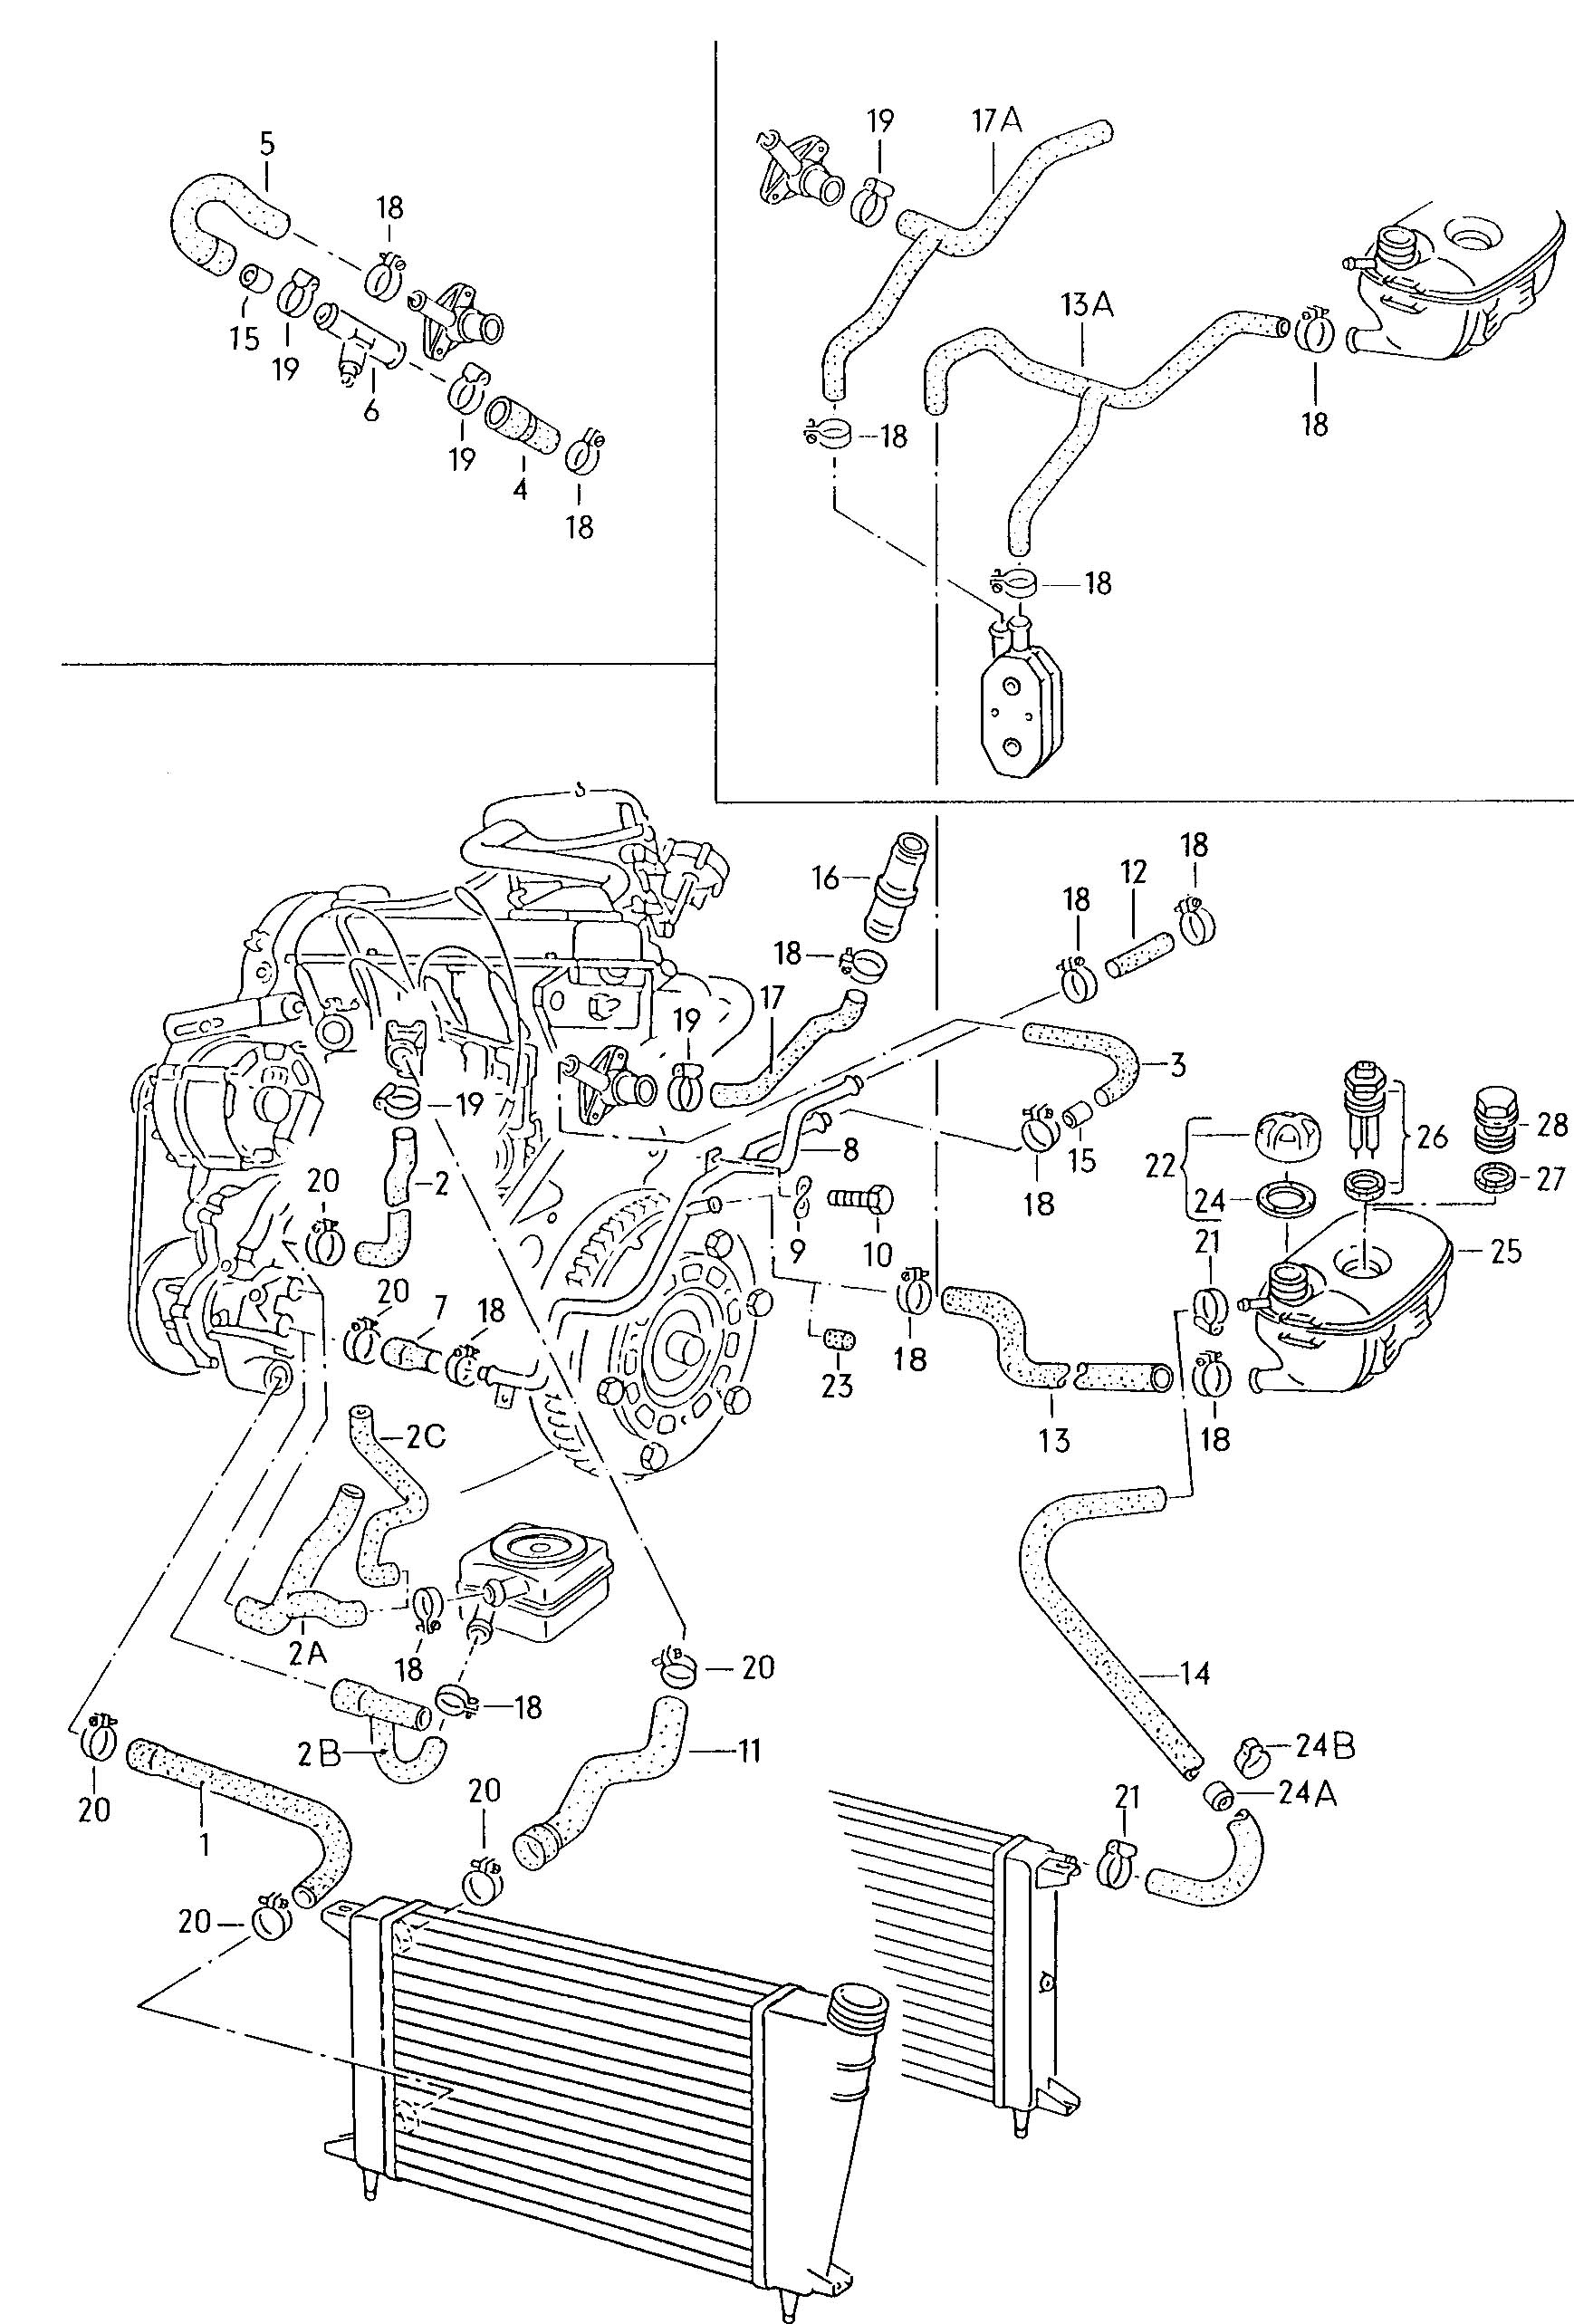 2003 Vw Jetta Engine Partment Diagram, 2003, Free Engine